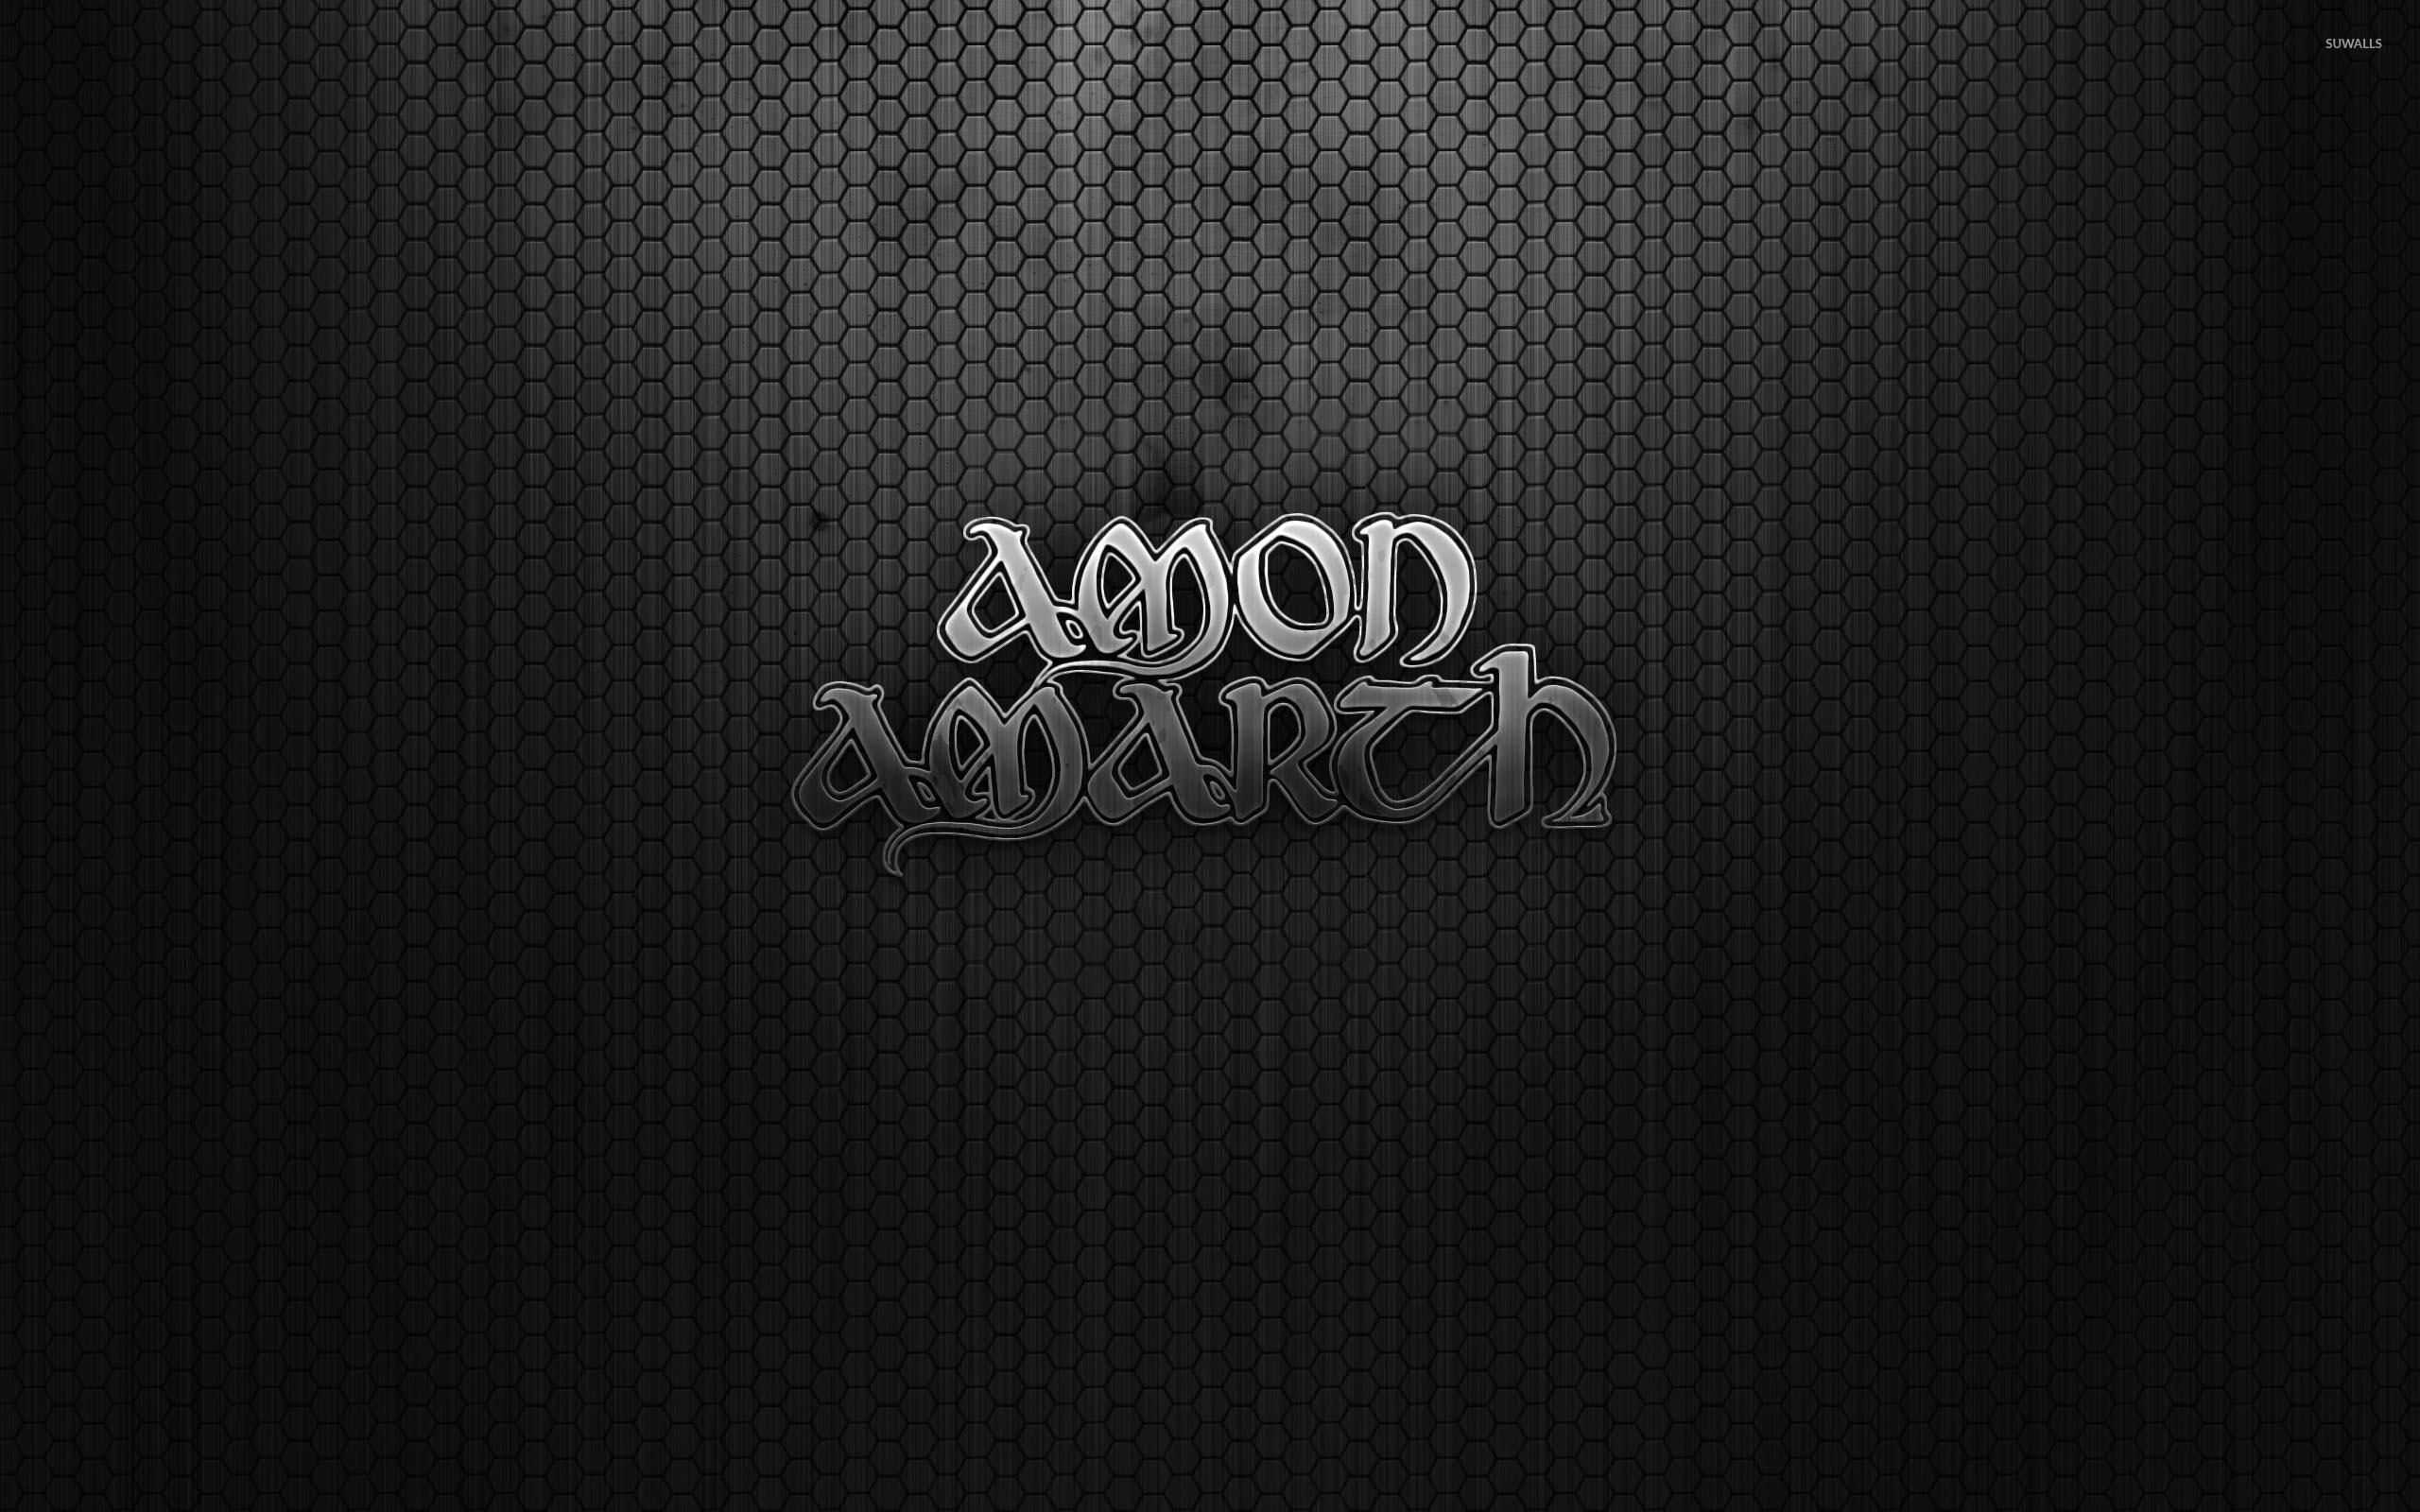 Hd wallpapers quotes funny - Amon Amarth Wallpaper Music Wallpapers 42662